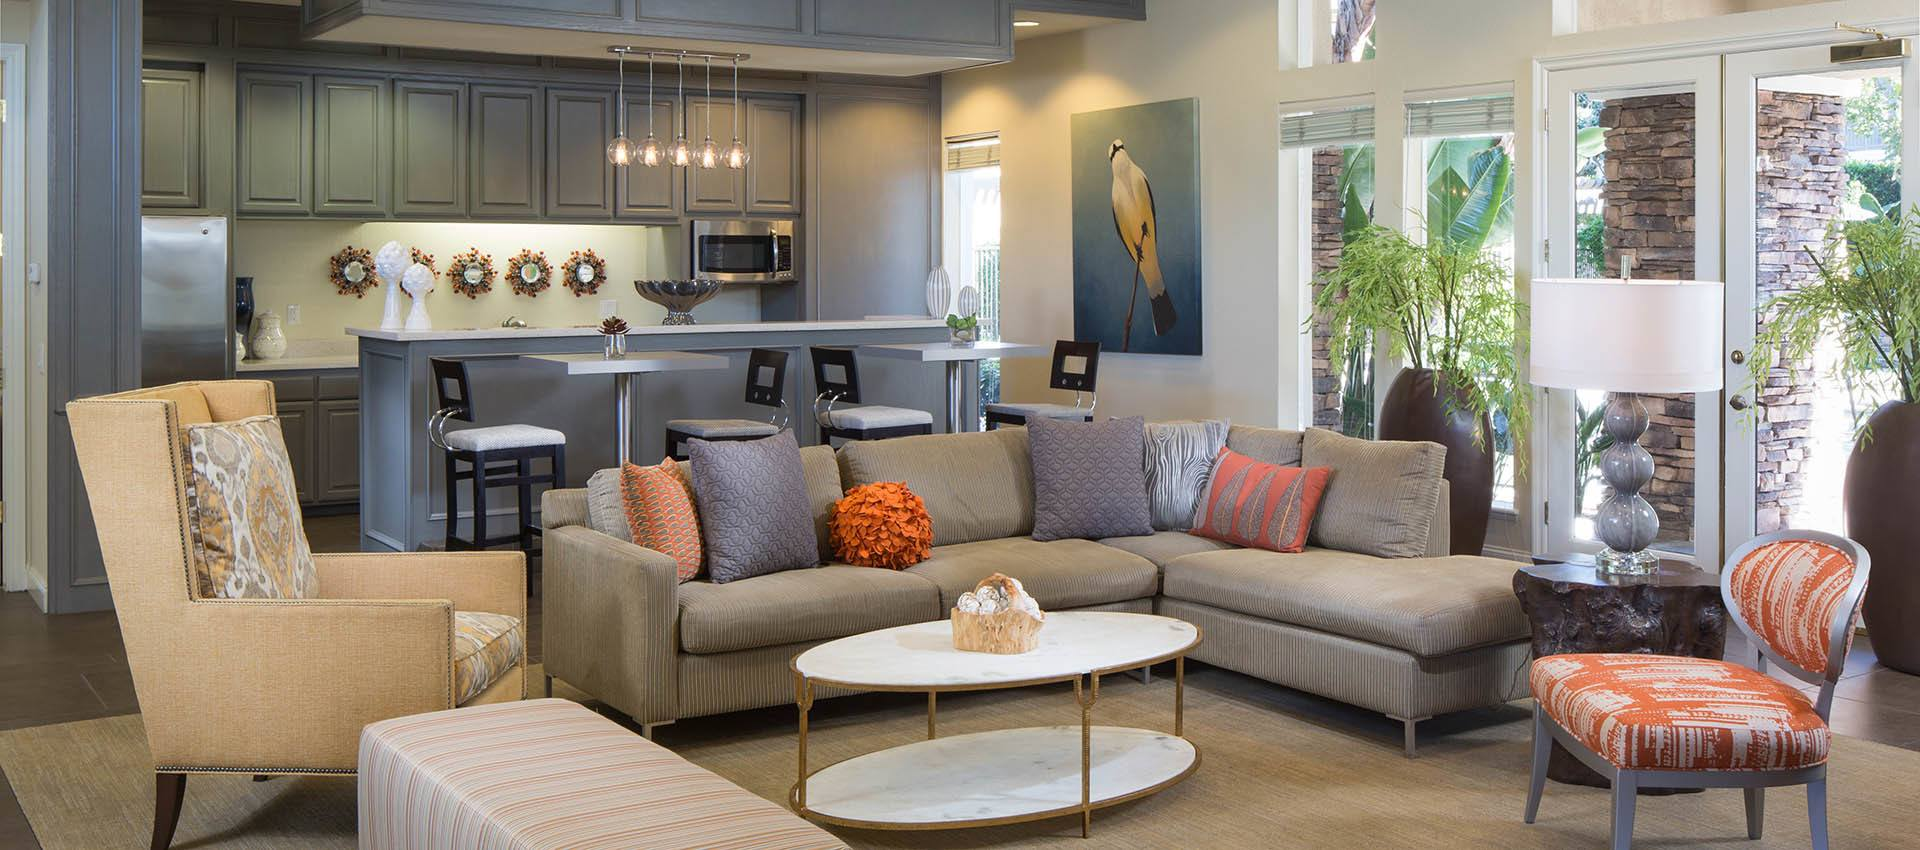 Resident's Clubhouse With Kitchen Amenities Gallery